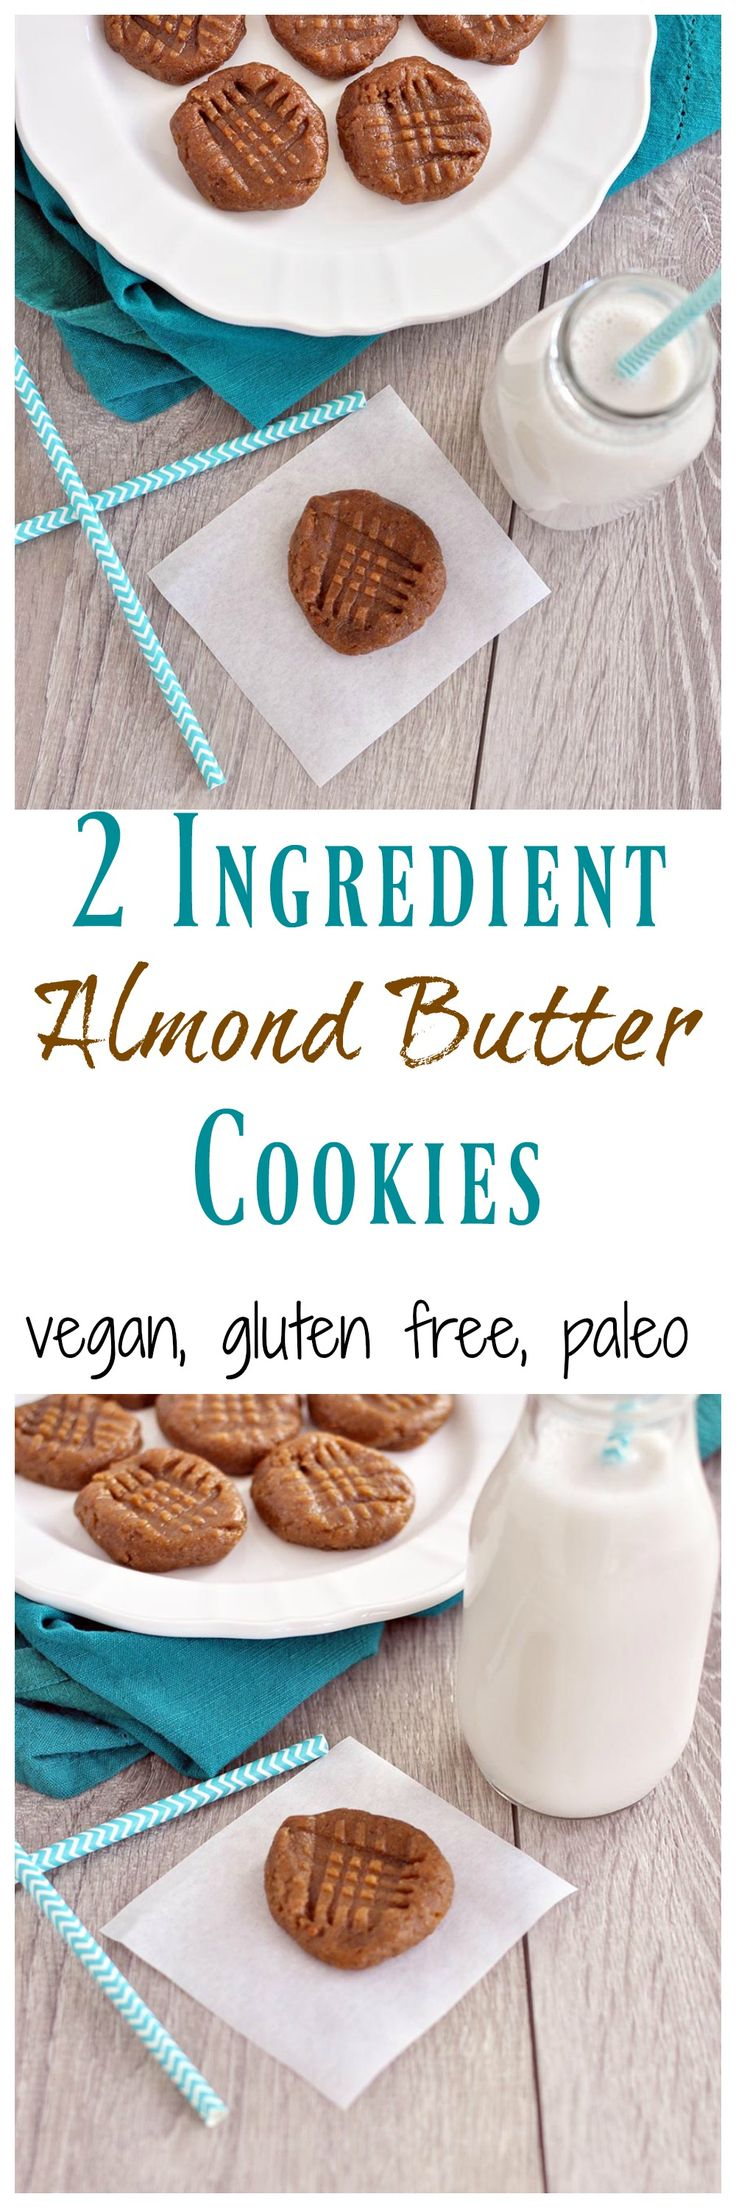 2 Ingredient Almond Butter Cookies   6 Medjool dates , soaked in water 1 cup salted almond butter (if you use unsalted, then add a little salt to the recipe).